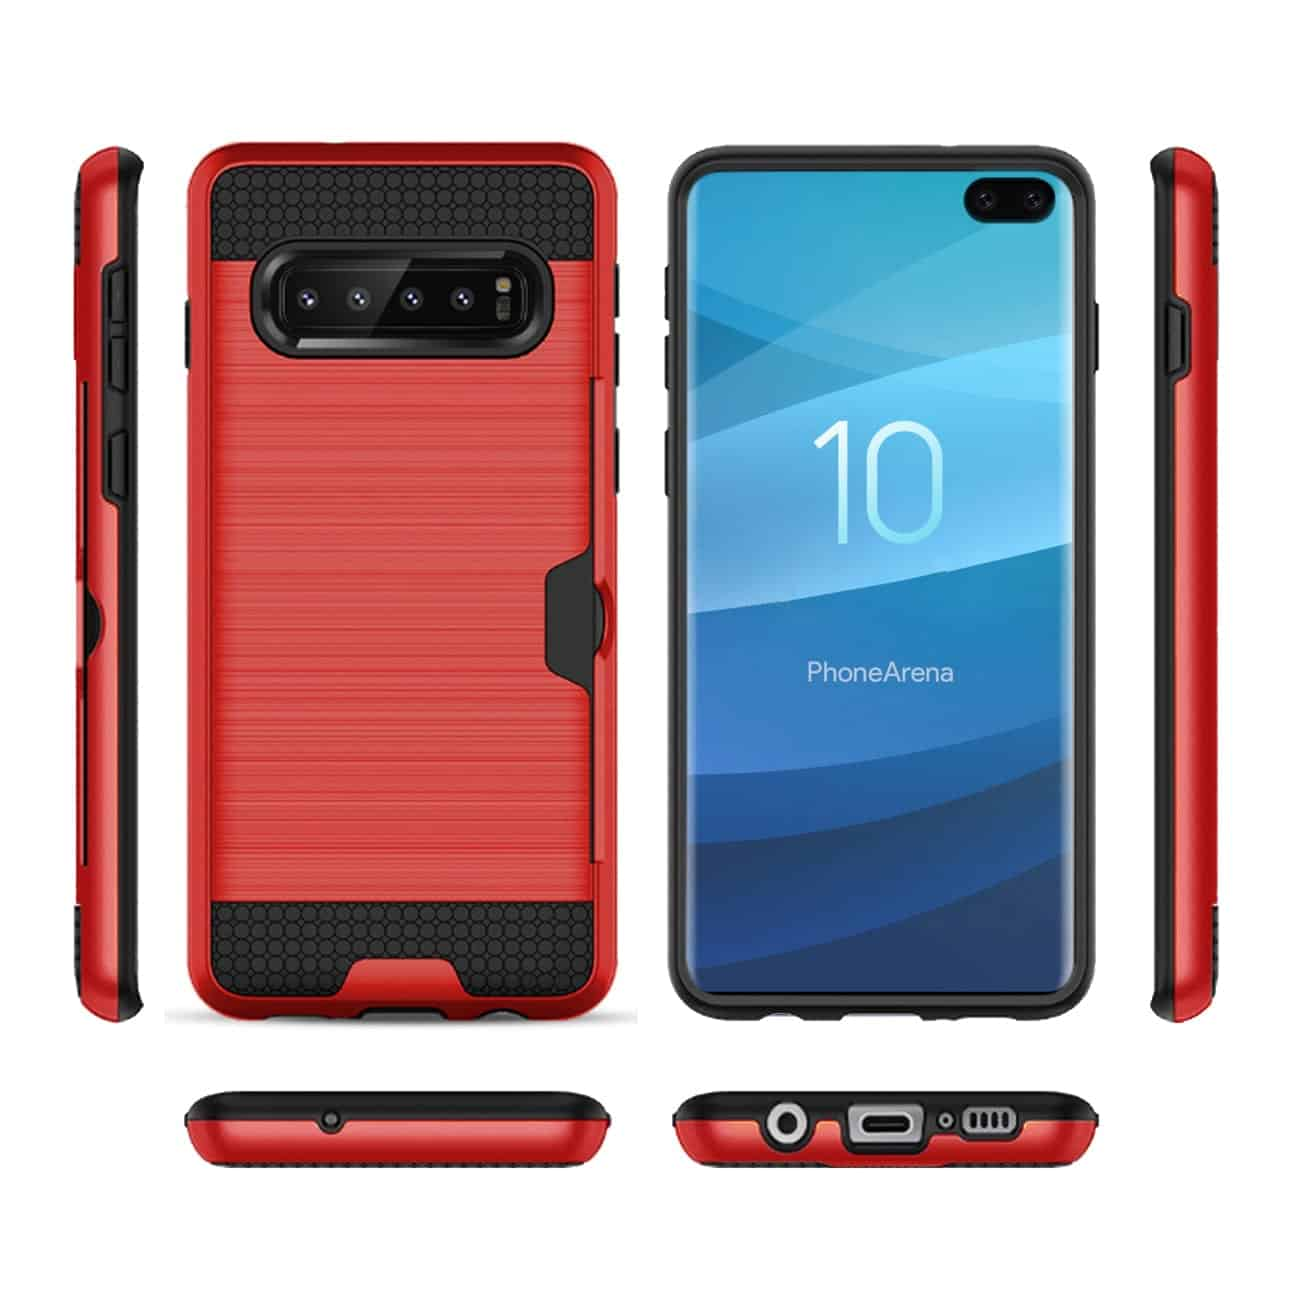 SAMSUNG GALAXY S10 Plus Slim Armor Hybrid Case With Card Holder In Red